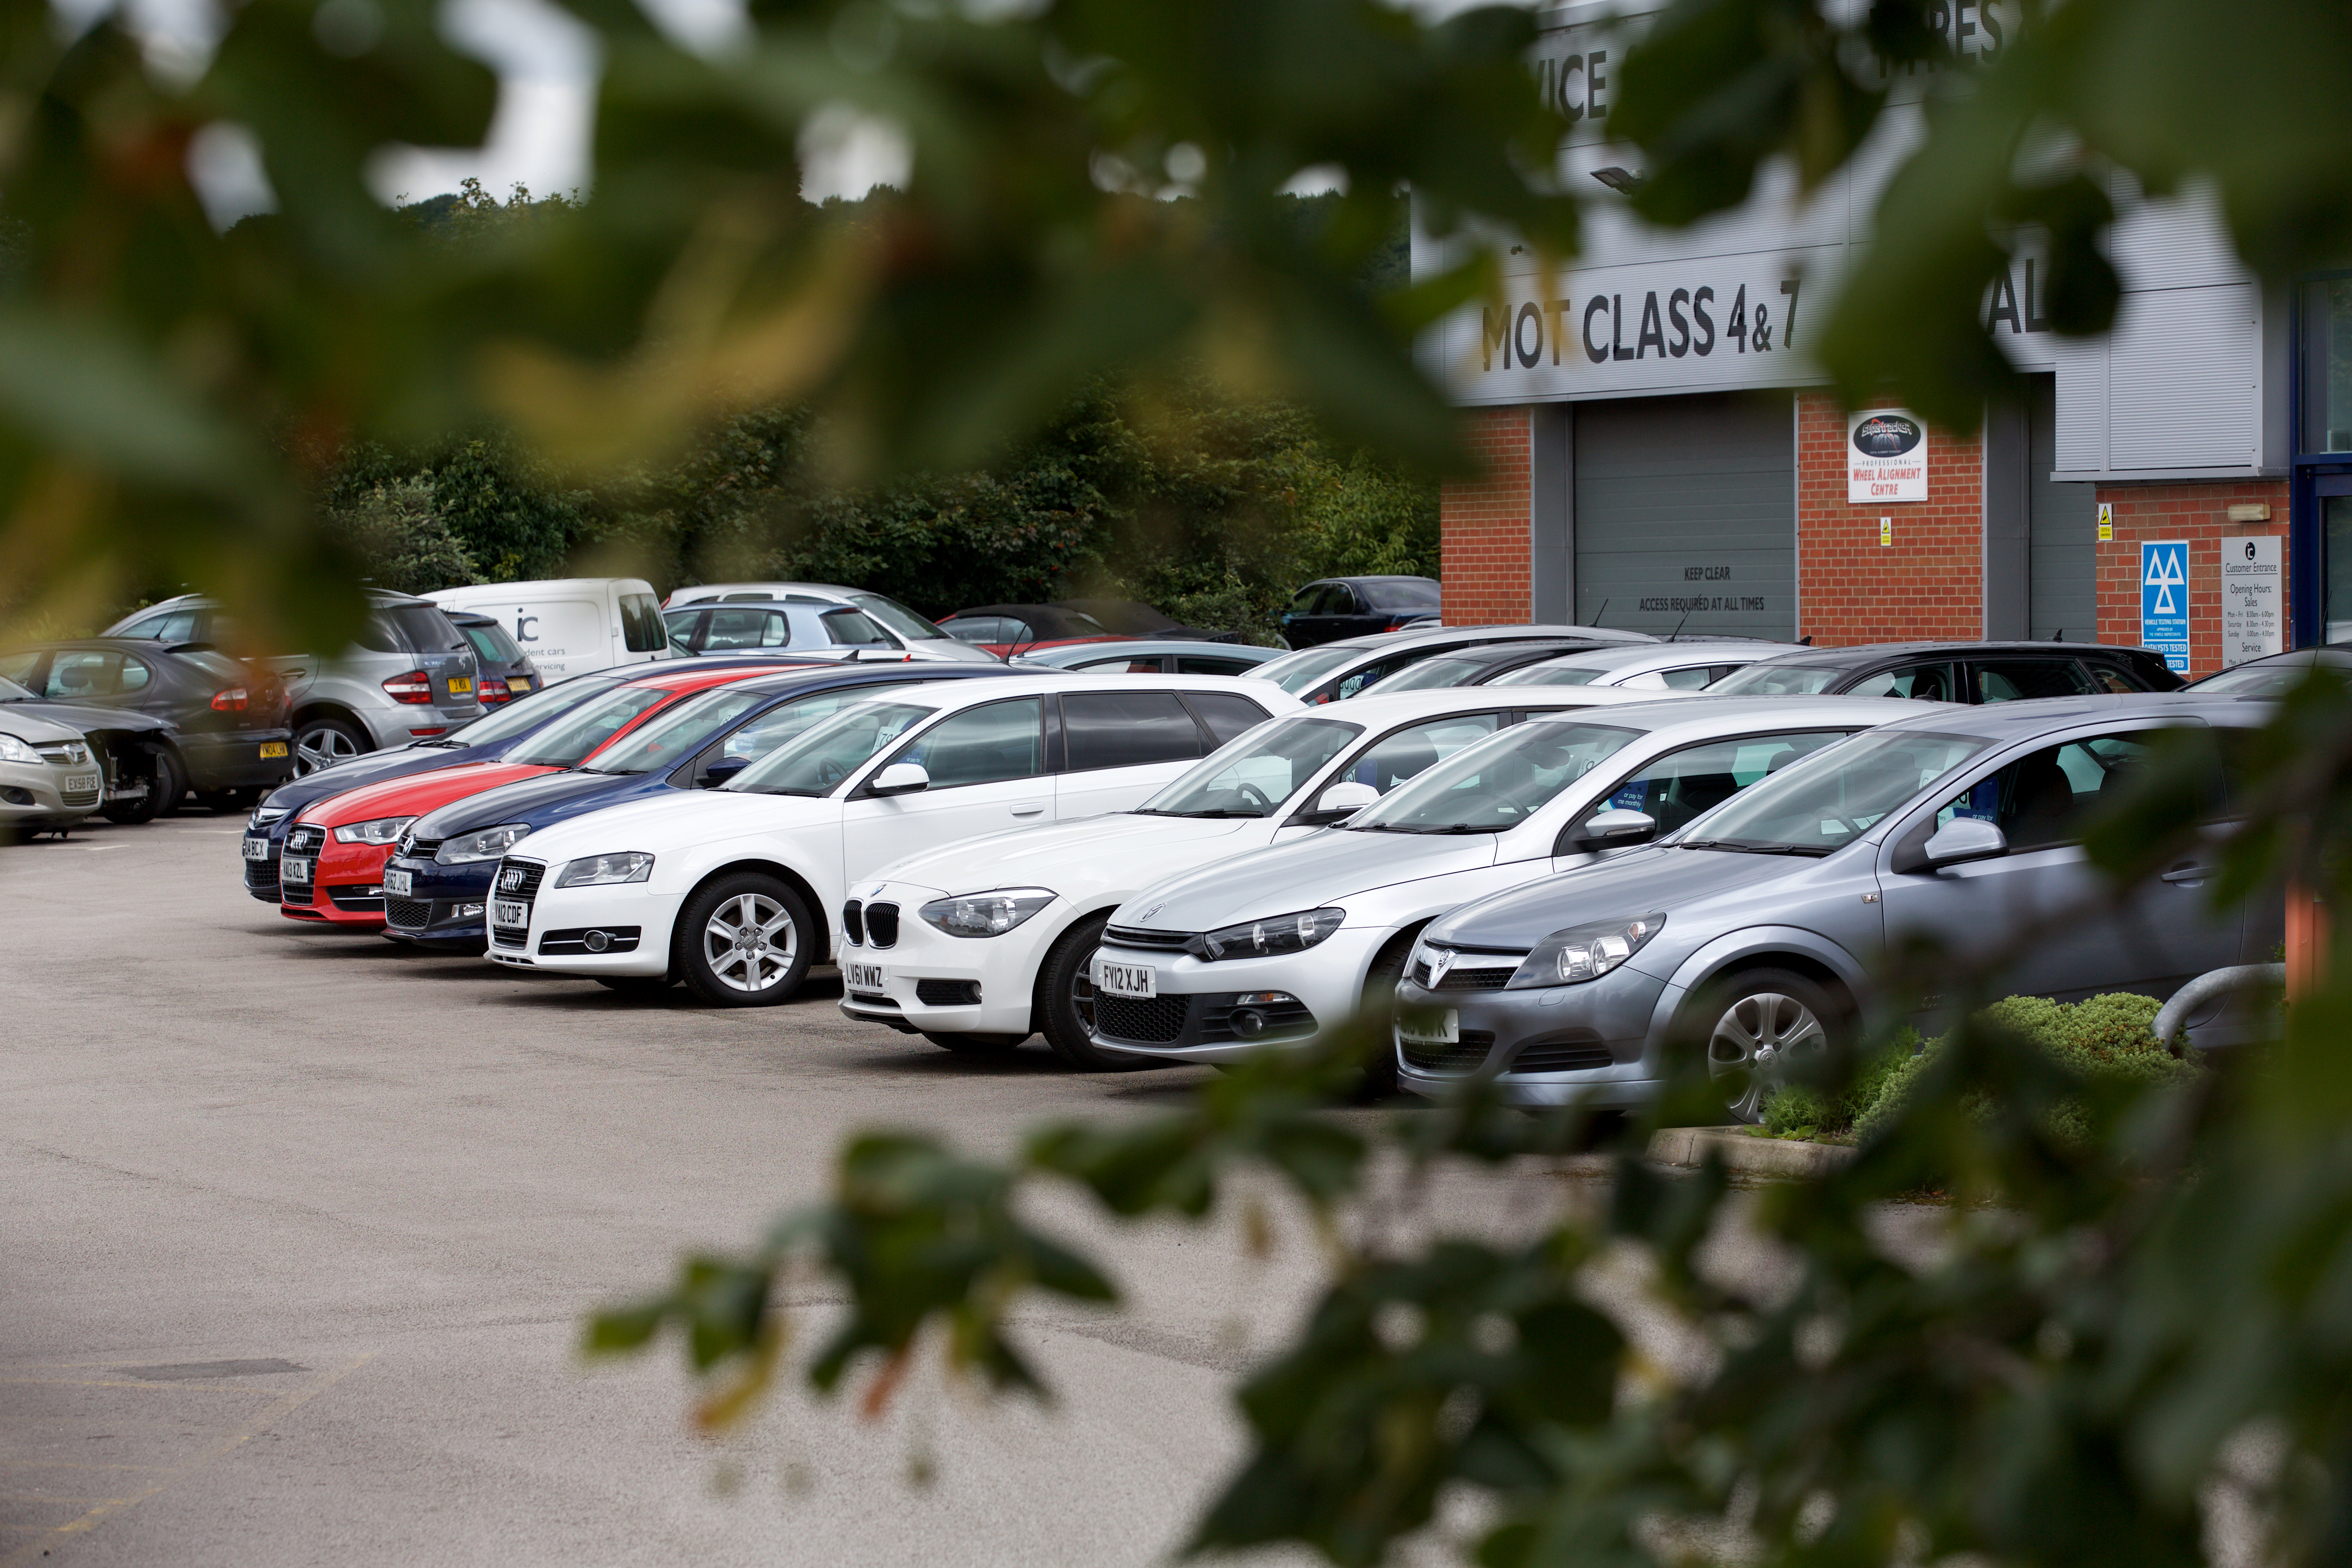 UK car dealers confident about business prospects in 2018